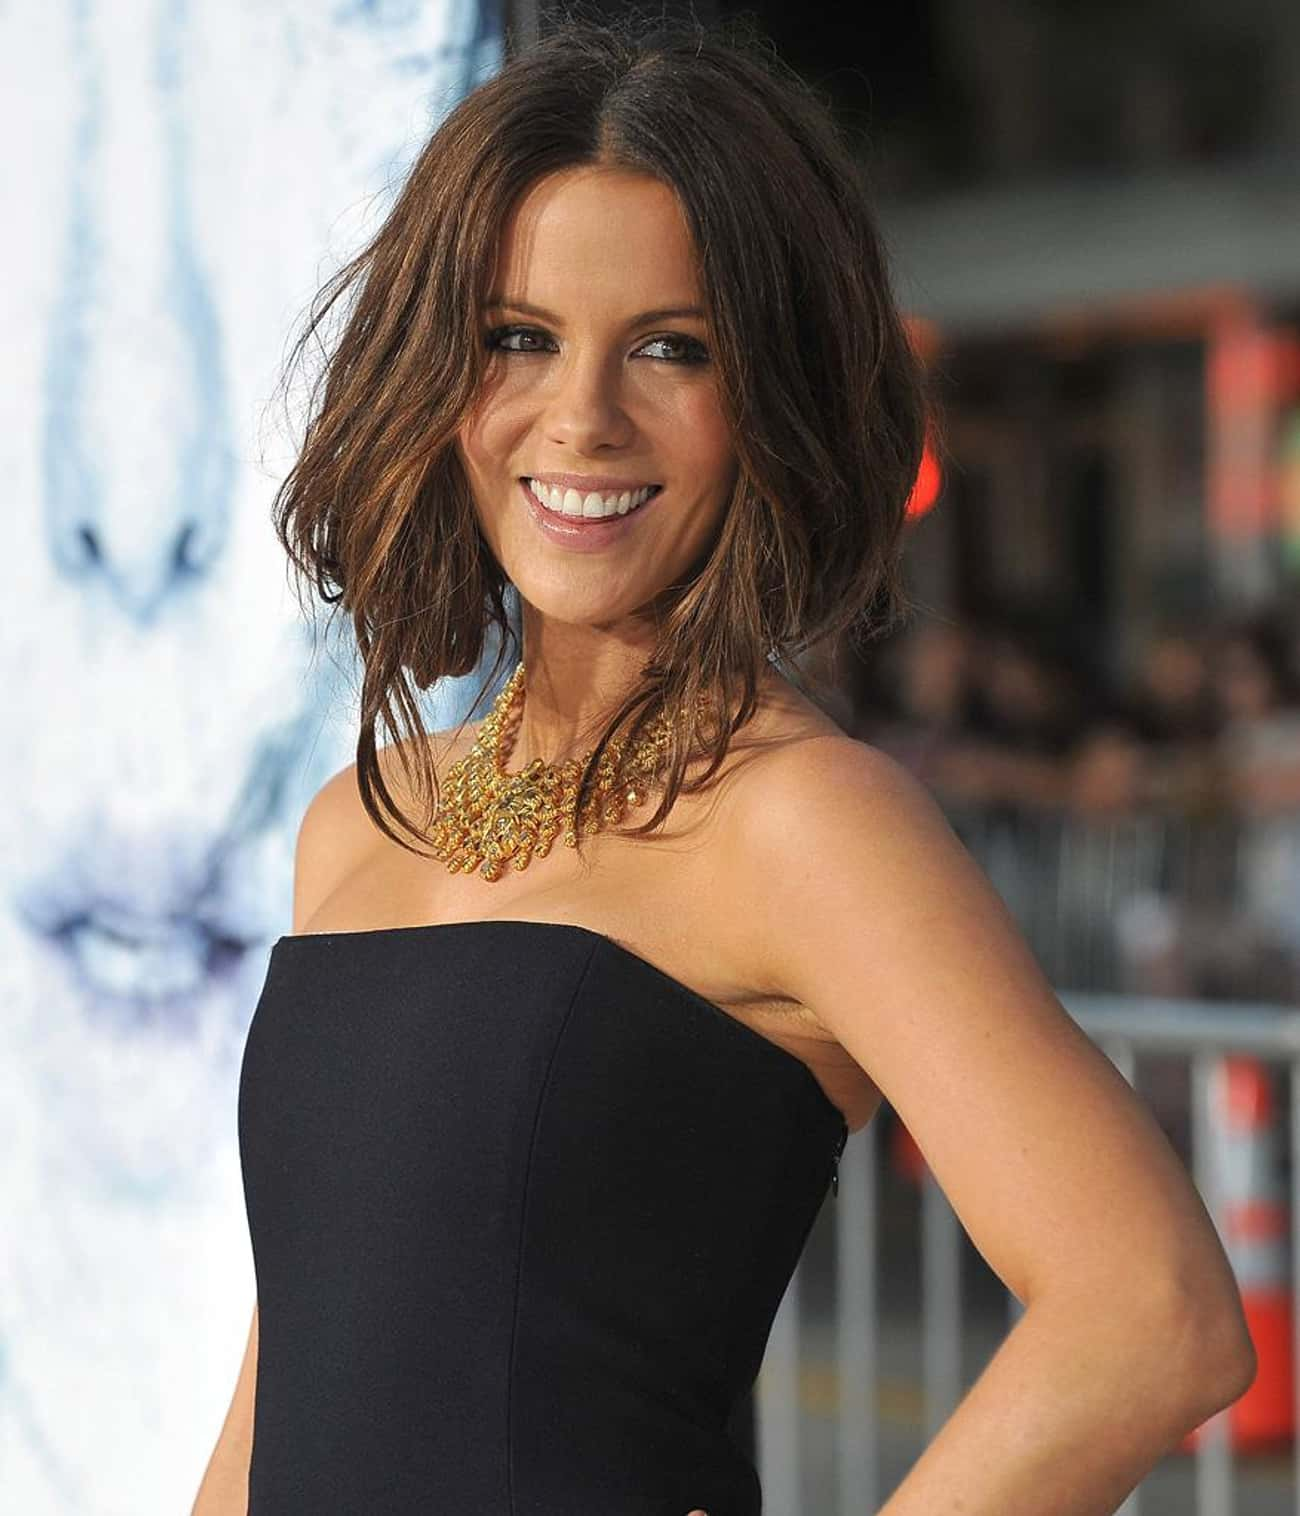 Kate Beckinsale is listed (or ranked) 1 on the list 30 Celebrities Who Have Struggled With Anorexia